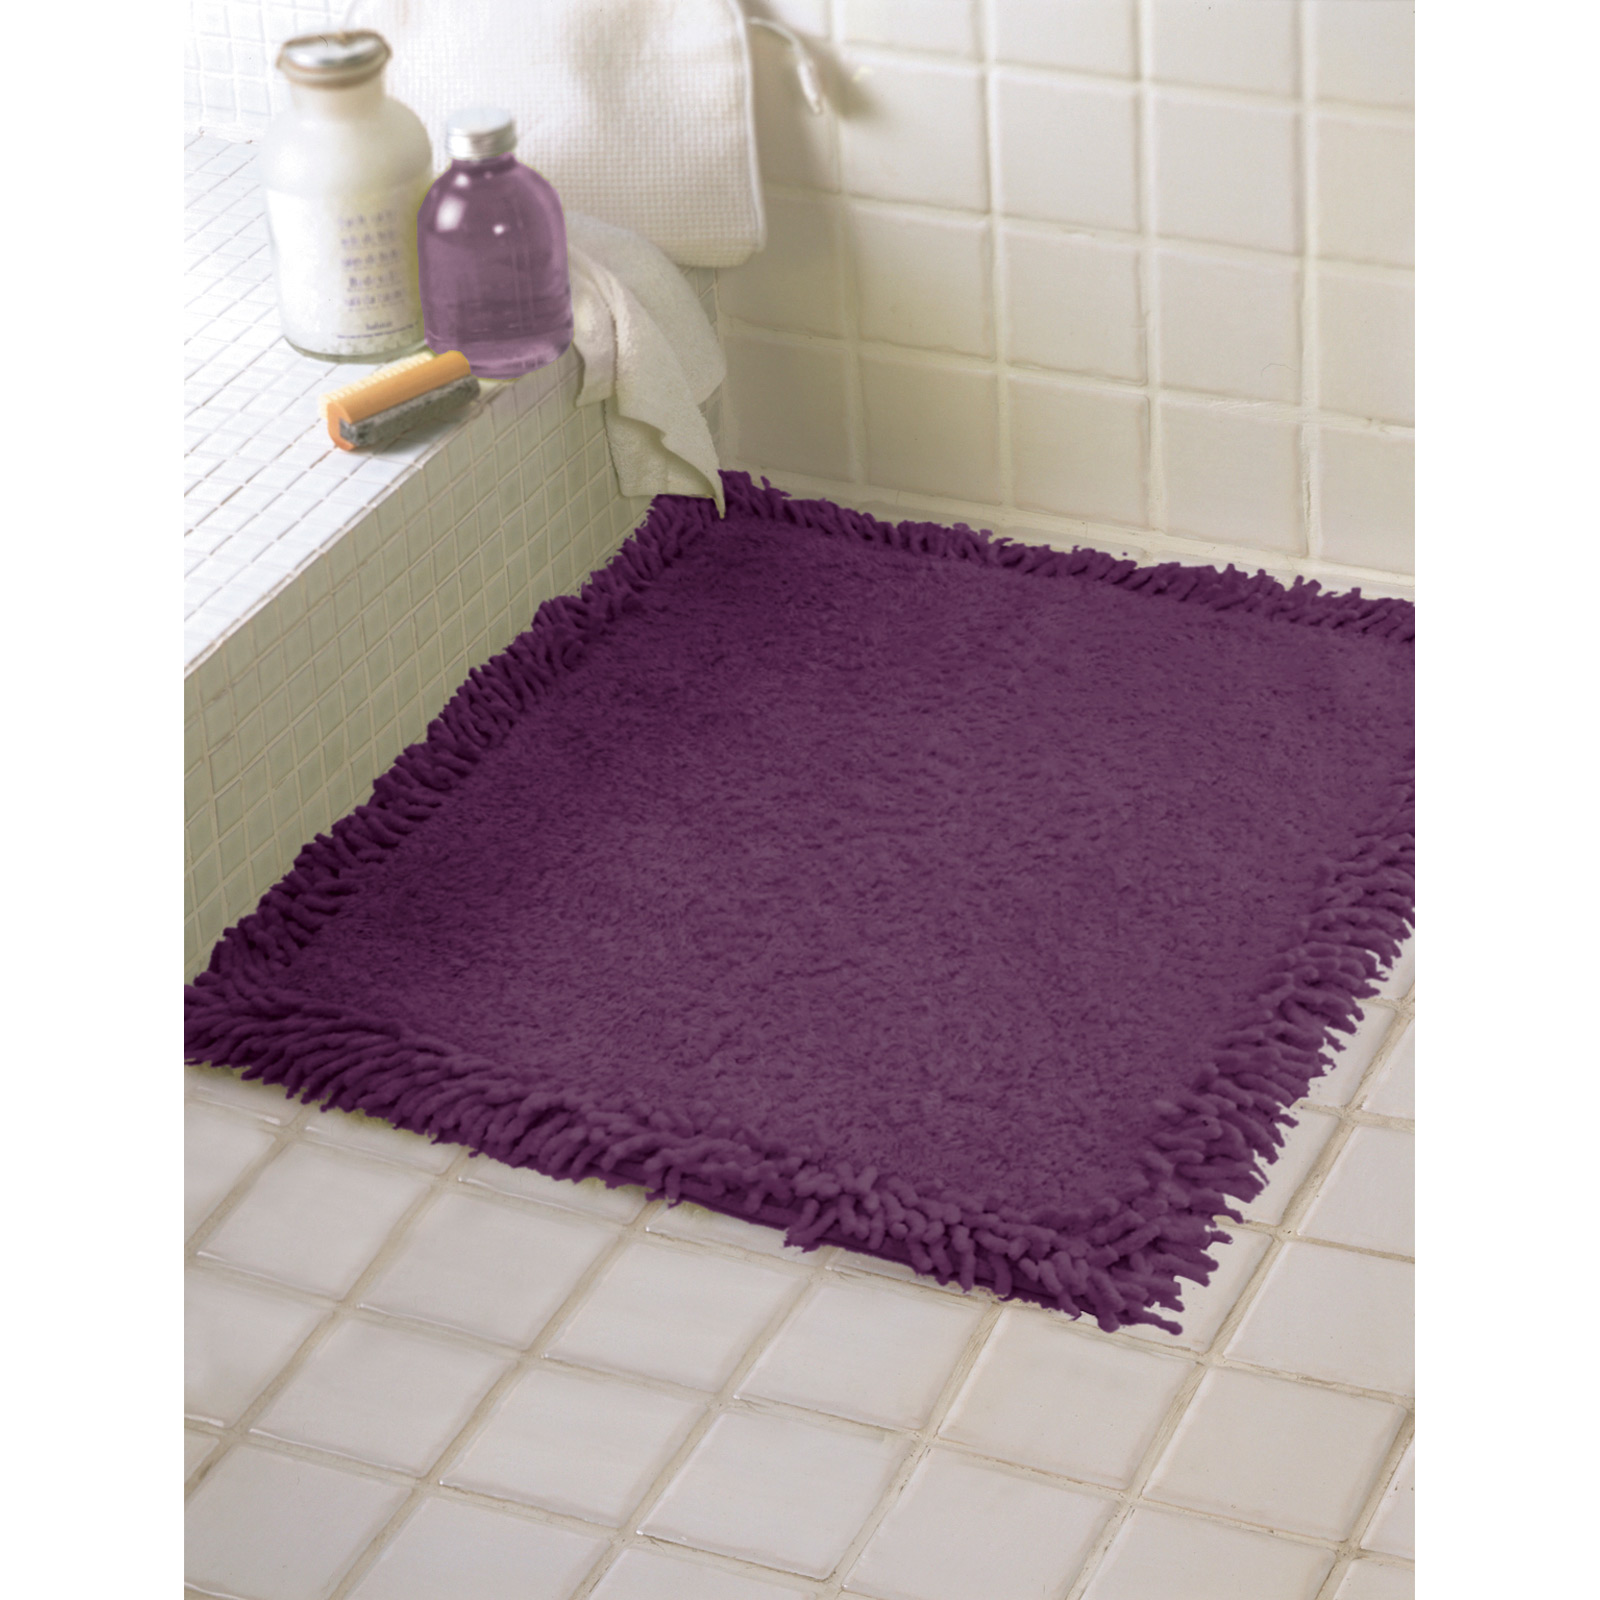 Plum Bath Rug Home Decor